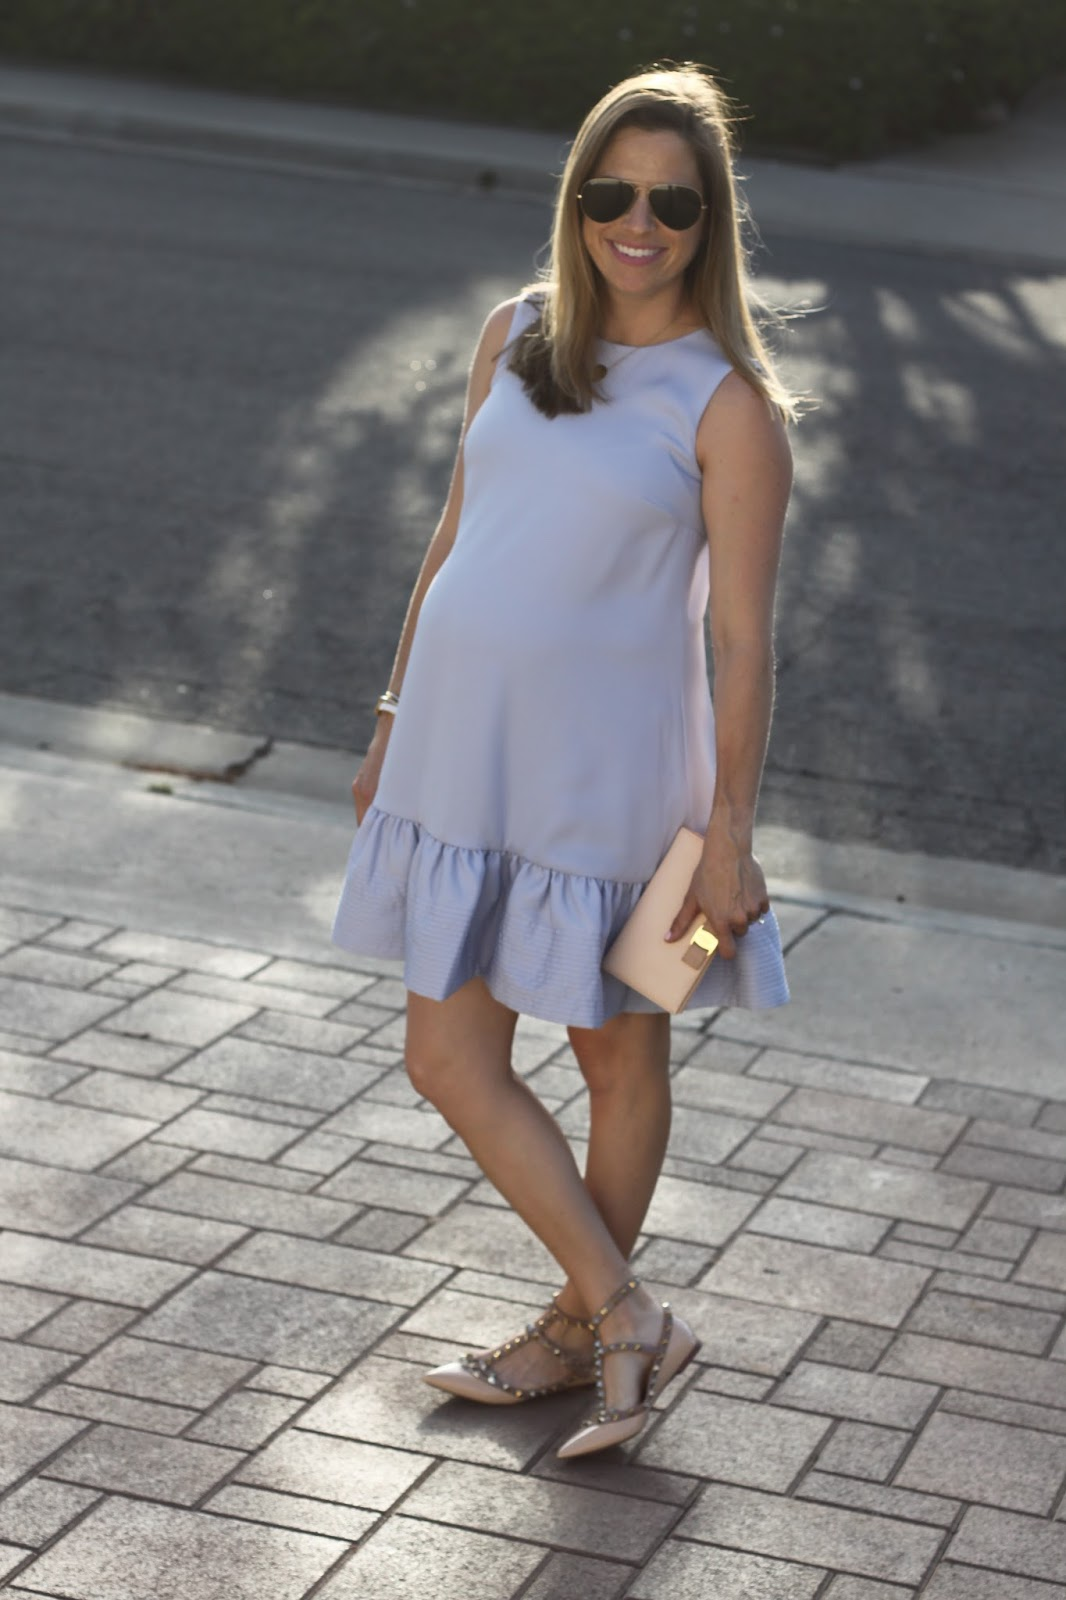 ruffle dress and rockstuds